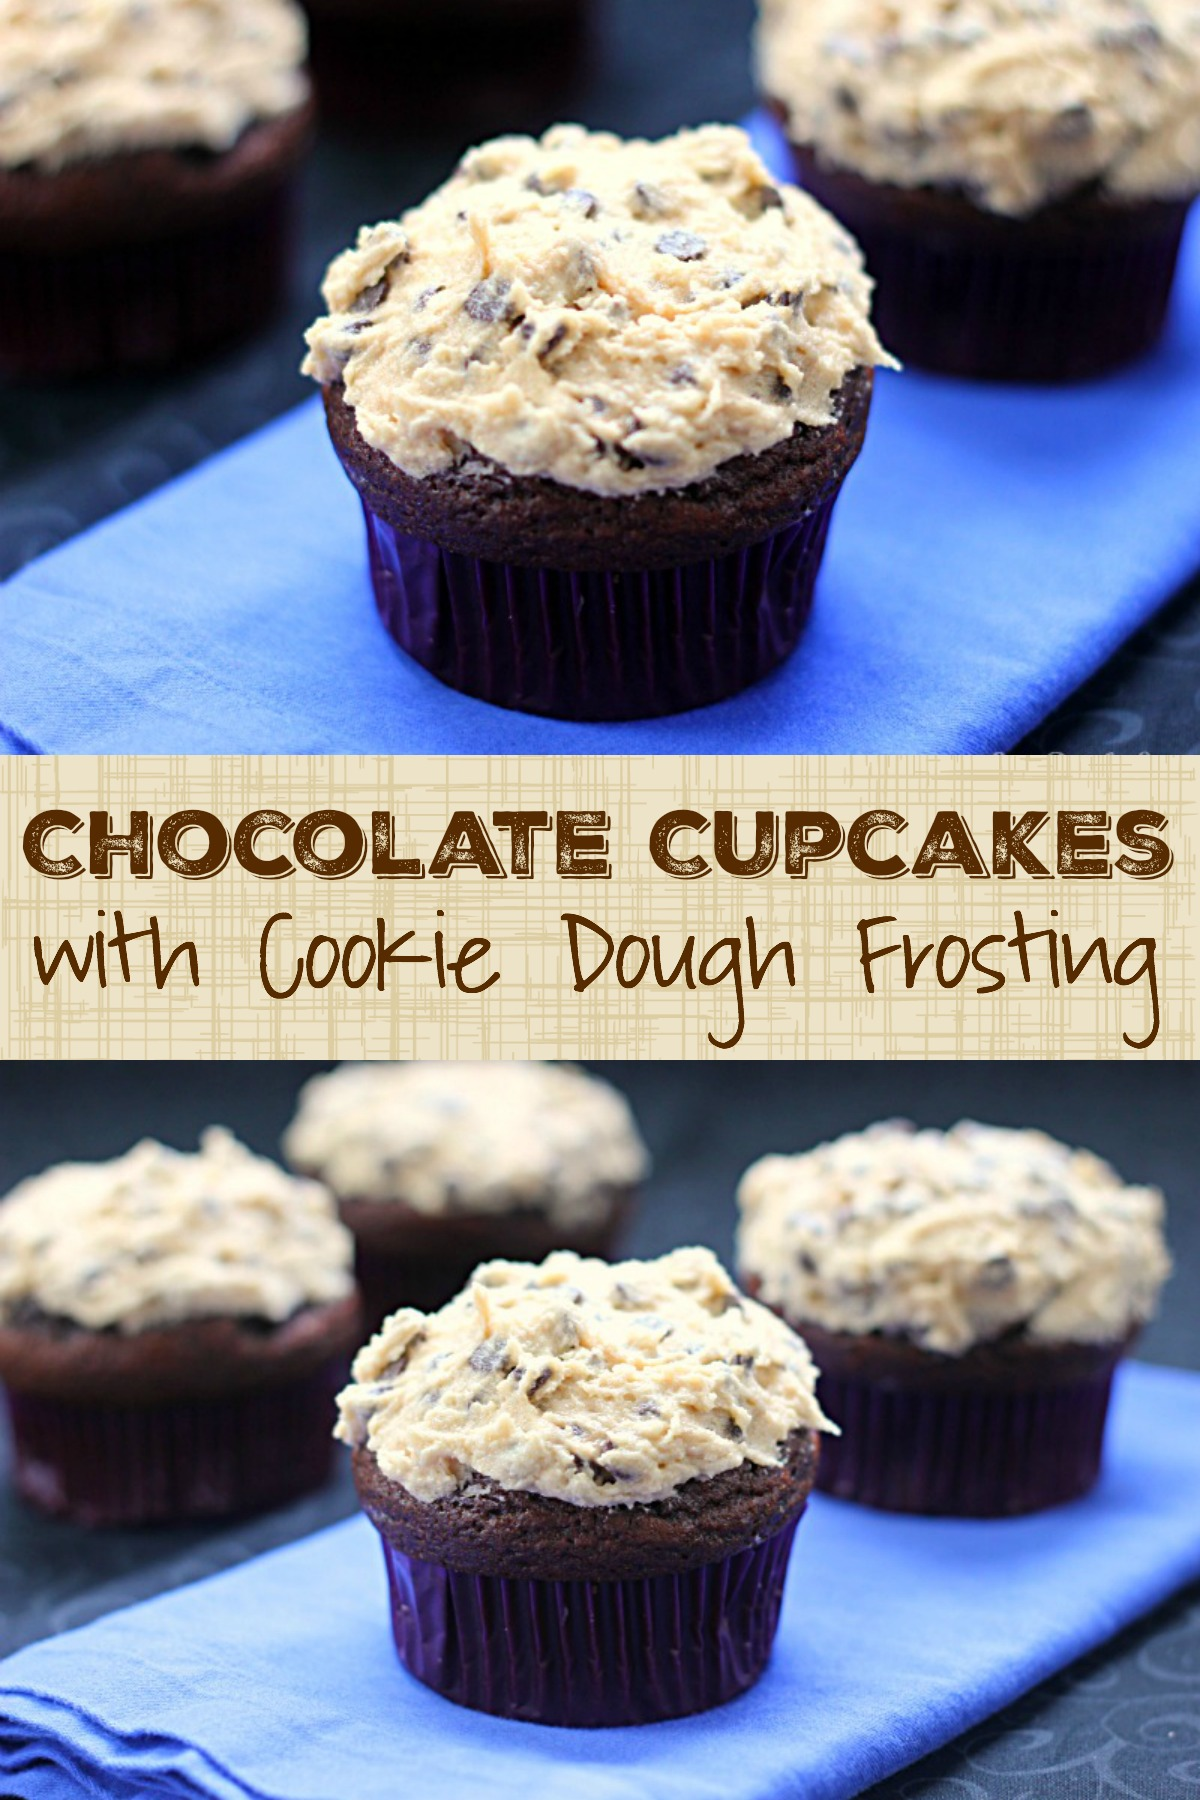 Chocolate Cupcakes with Cookie Dough Frosting